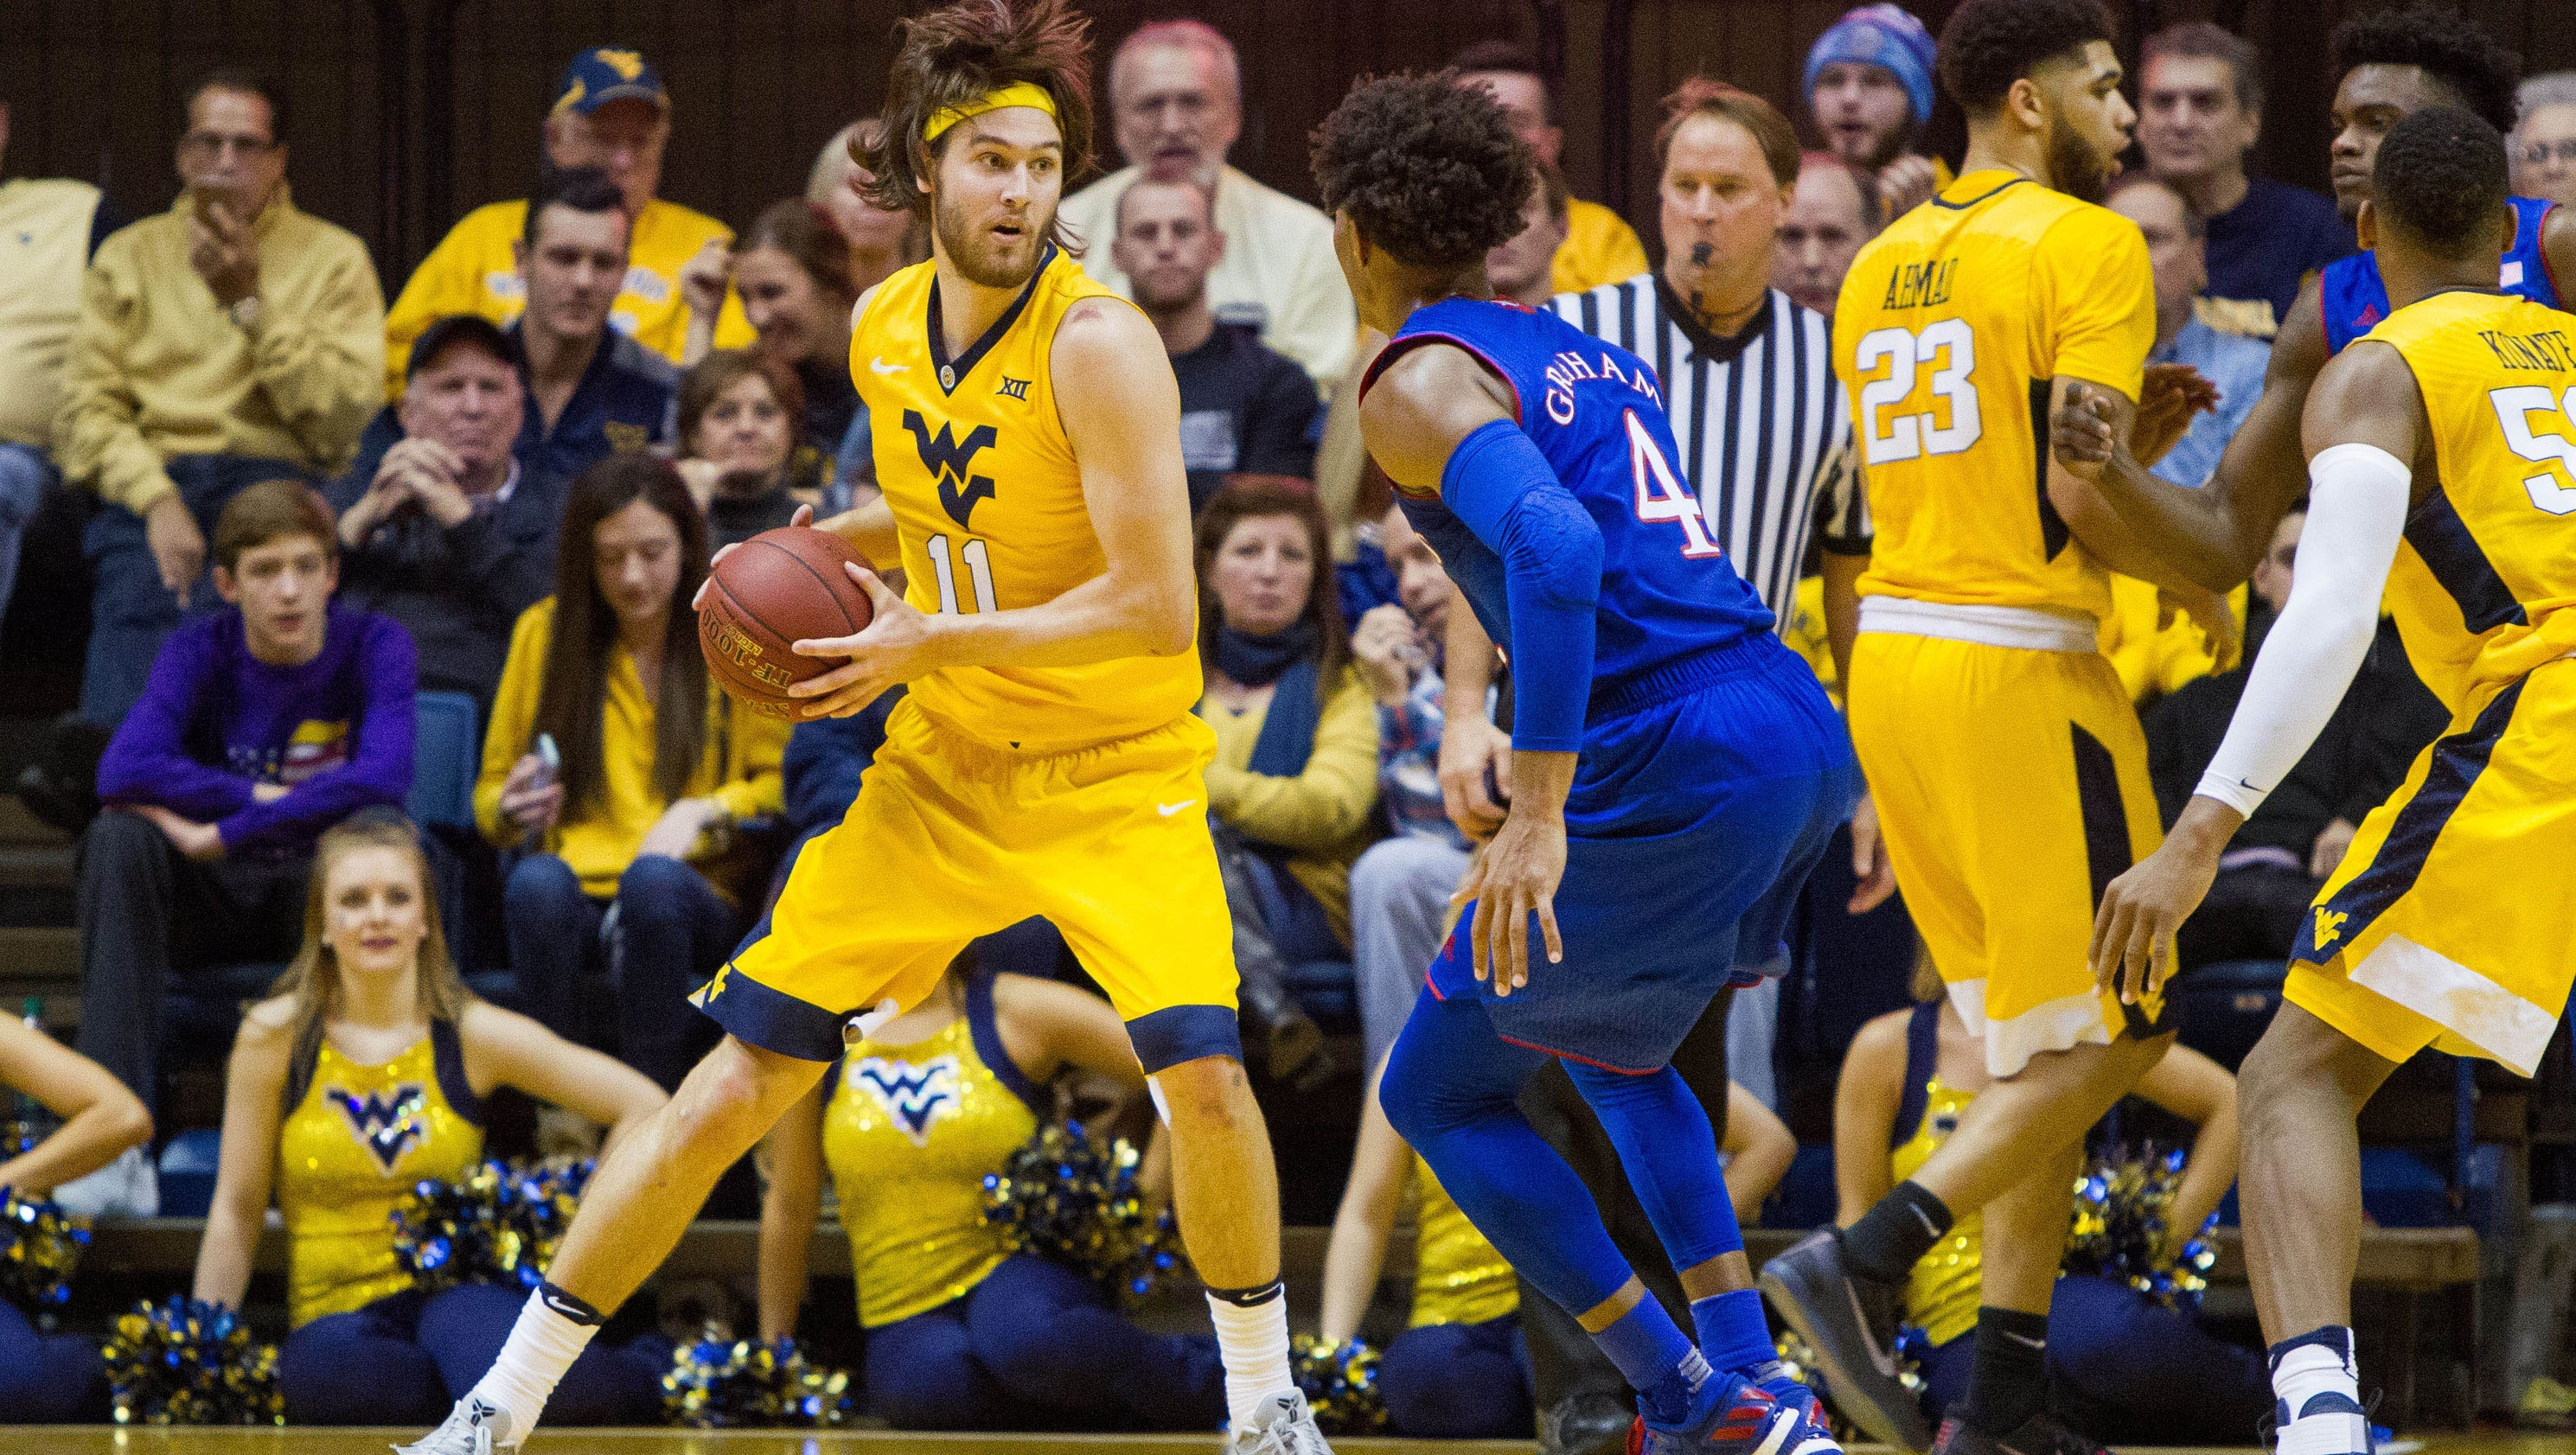 College basketball this week: West Virginia goes for sweep ...